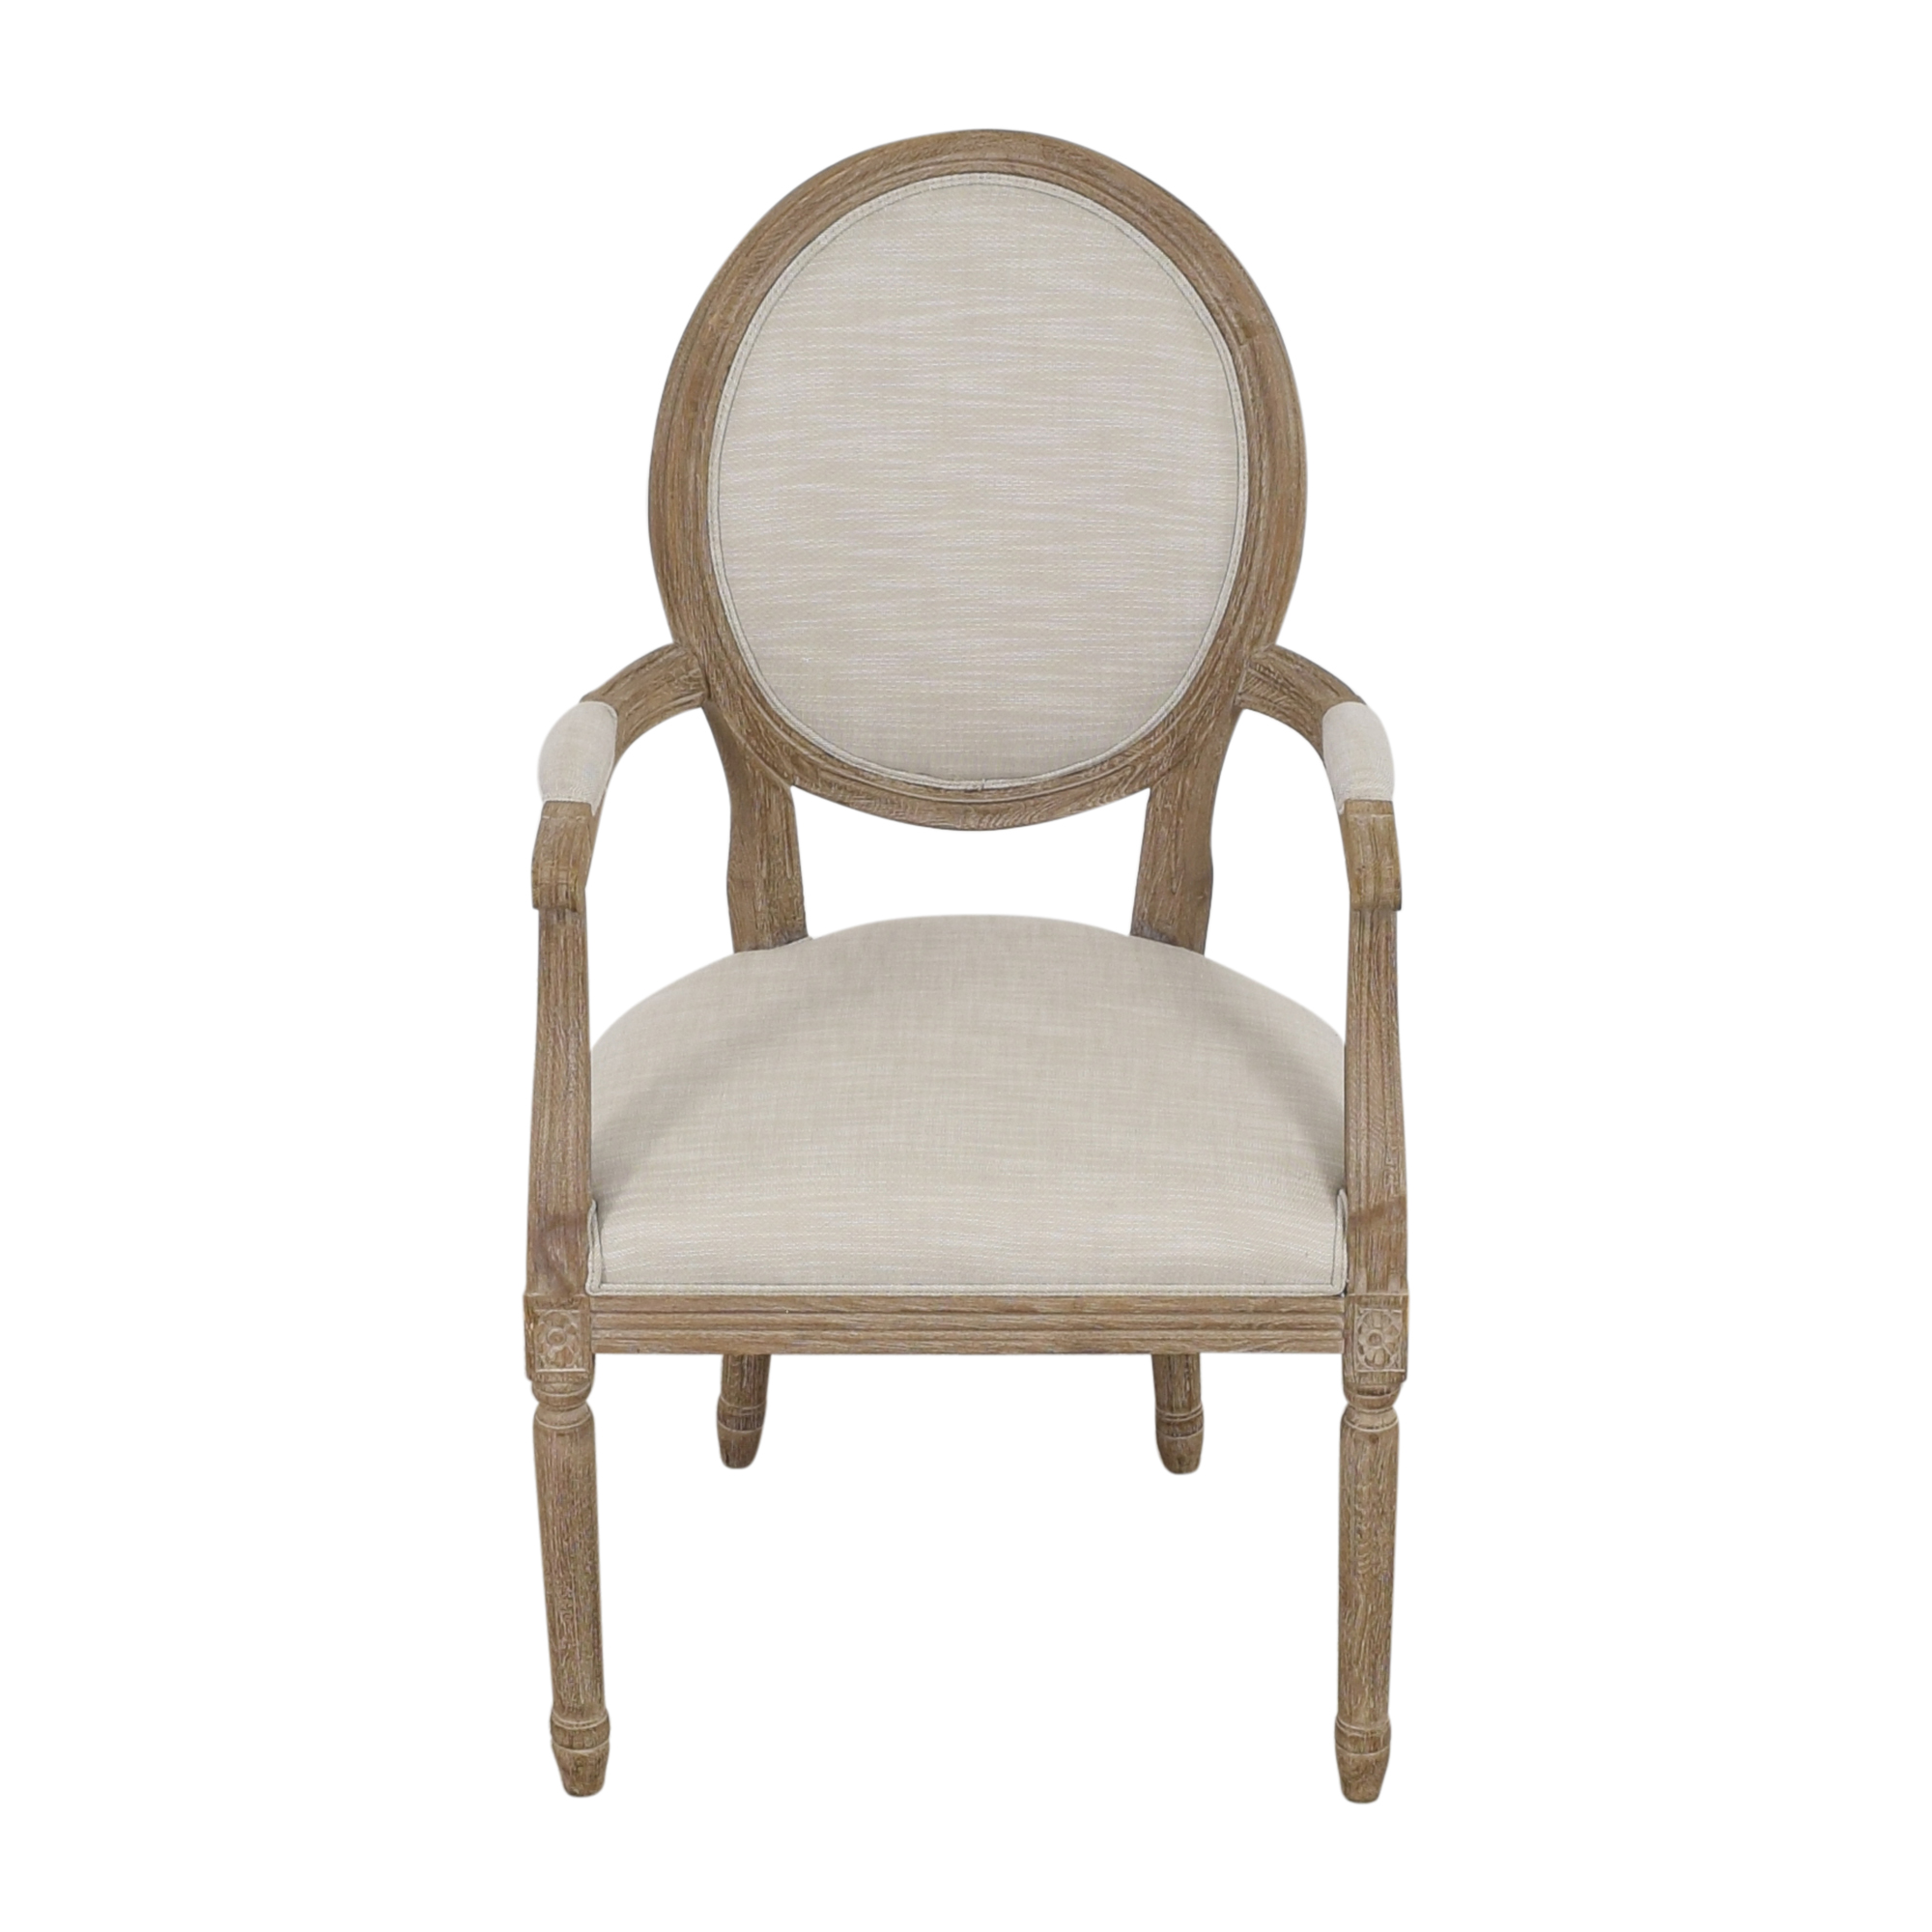 Restoration Hardware Restoration Hardware Vintage French Round Armchair nyc